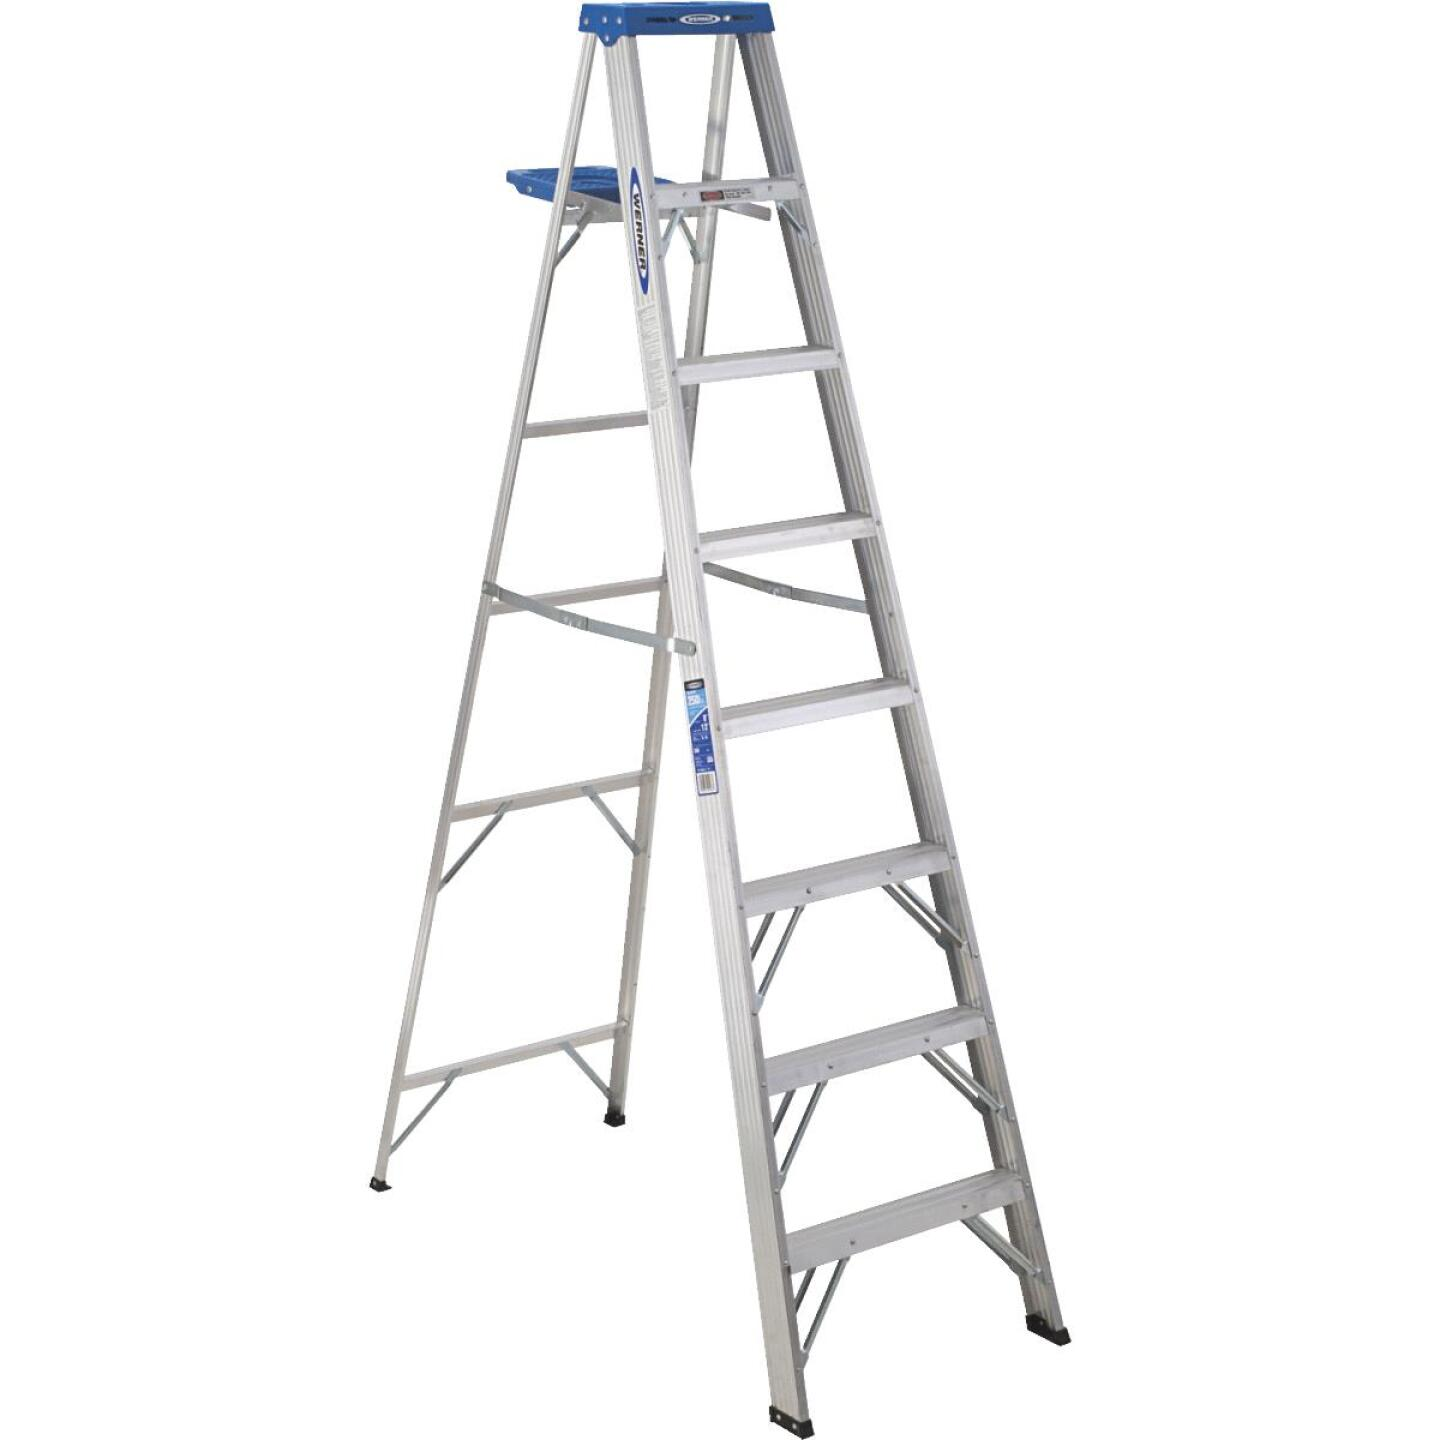 Werner 8 Ft. Aluminum Step Ladder with 250 Lb. Load Capacity Type I Ladder Rating Image 1